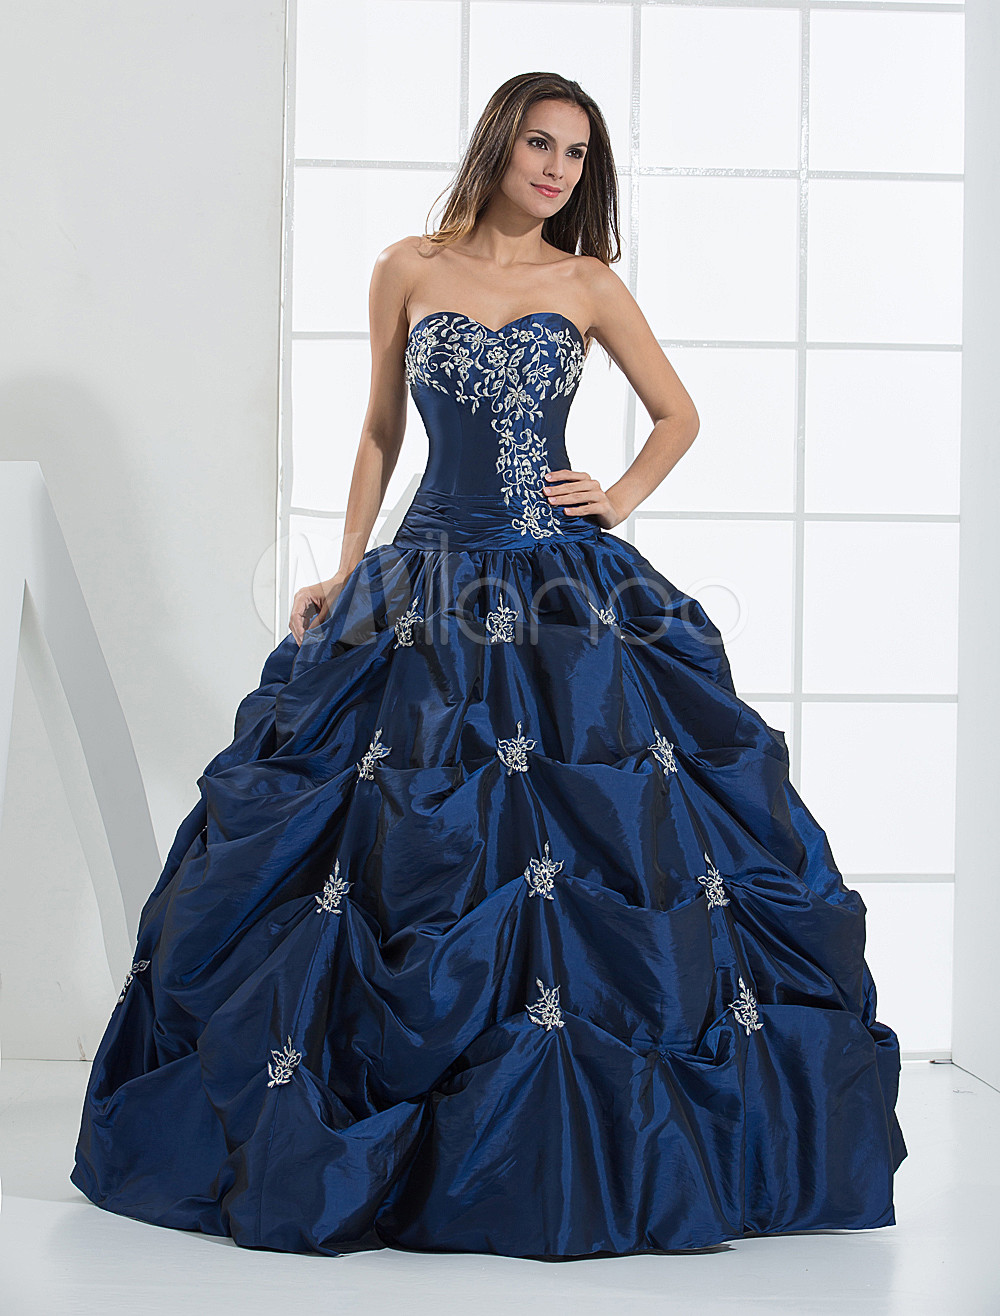 Blue Wedding Dress Satin Beading Vintage Strapless Sweetheart Floor-Length Bridal Gown